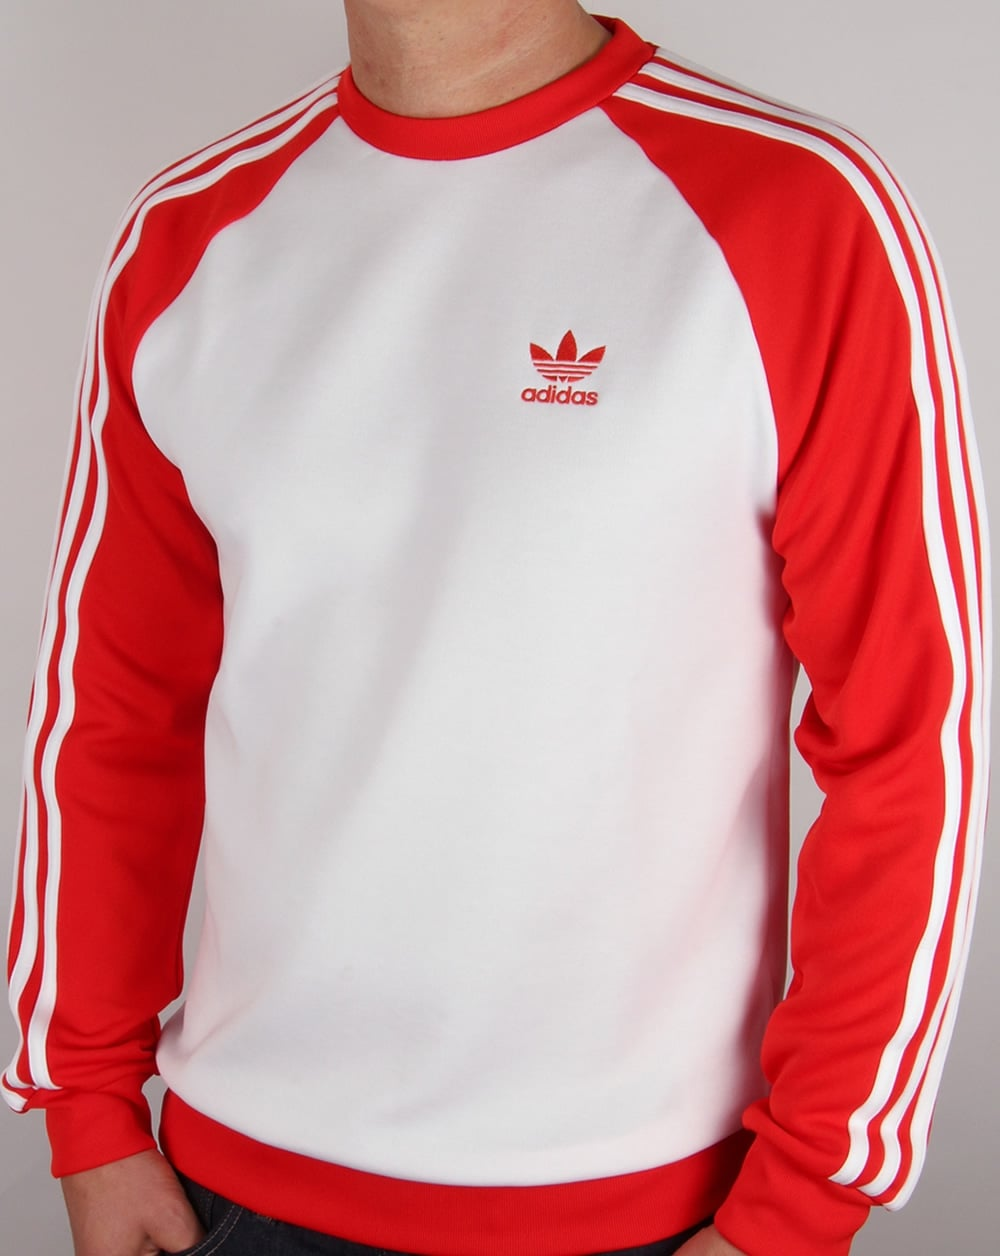 49bf35b2768d adidas Originals Adidas Originals Old Skool Sweat Top White Red